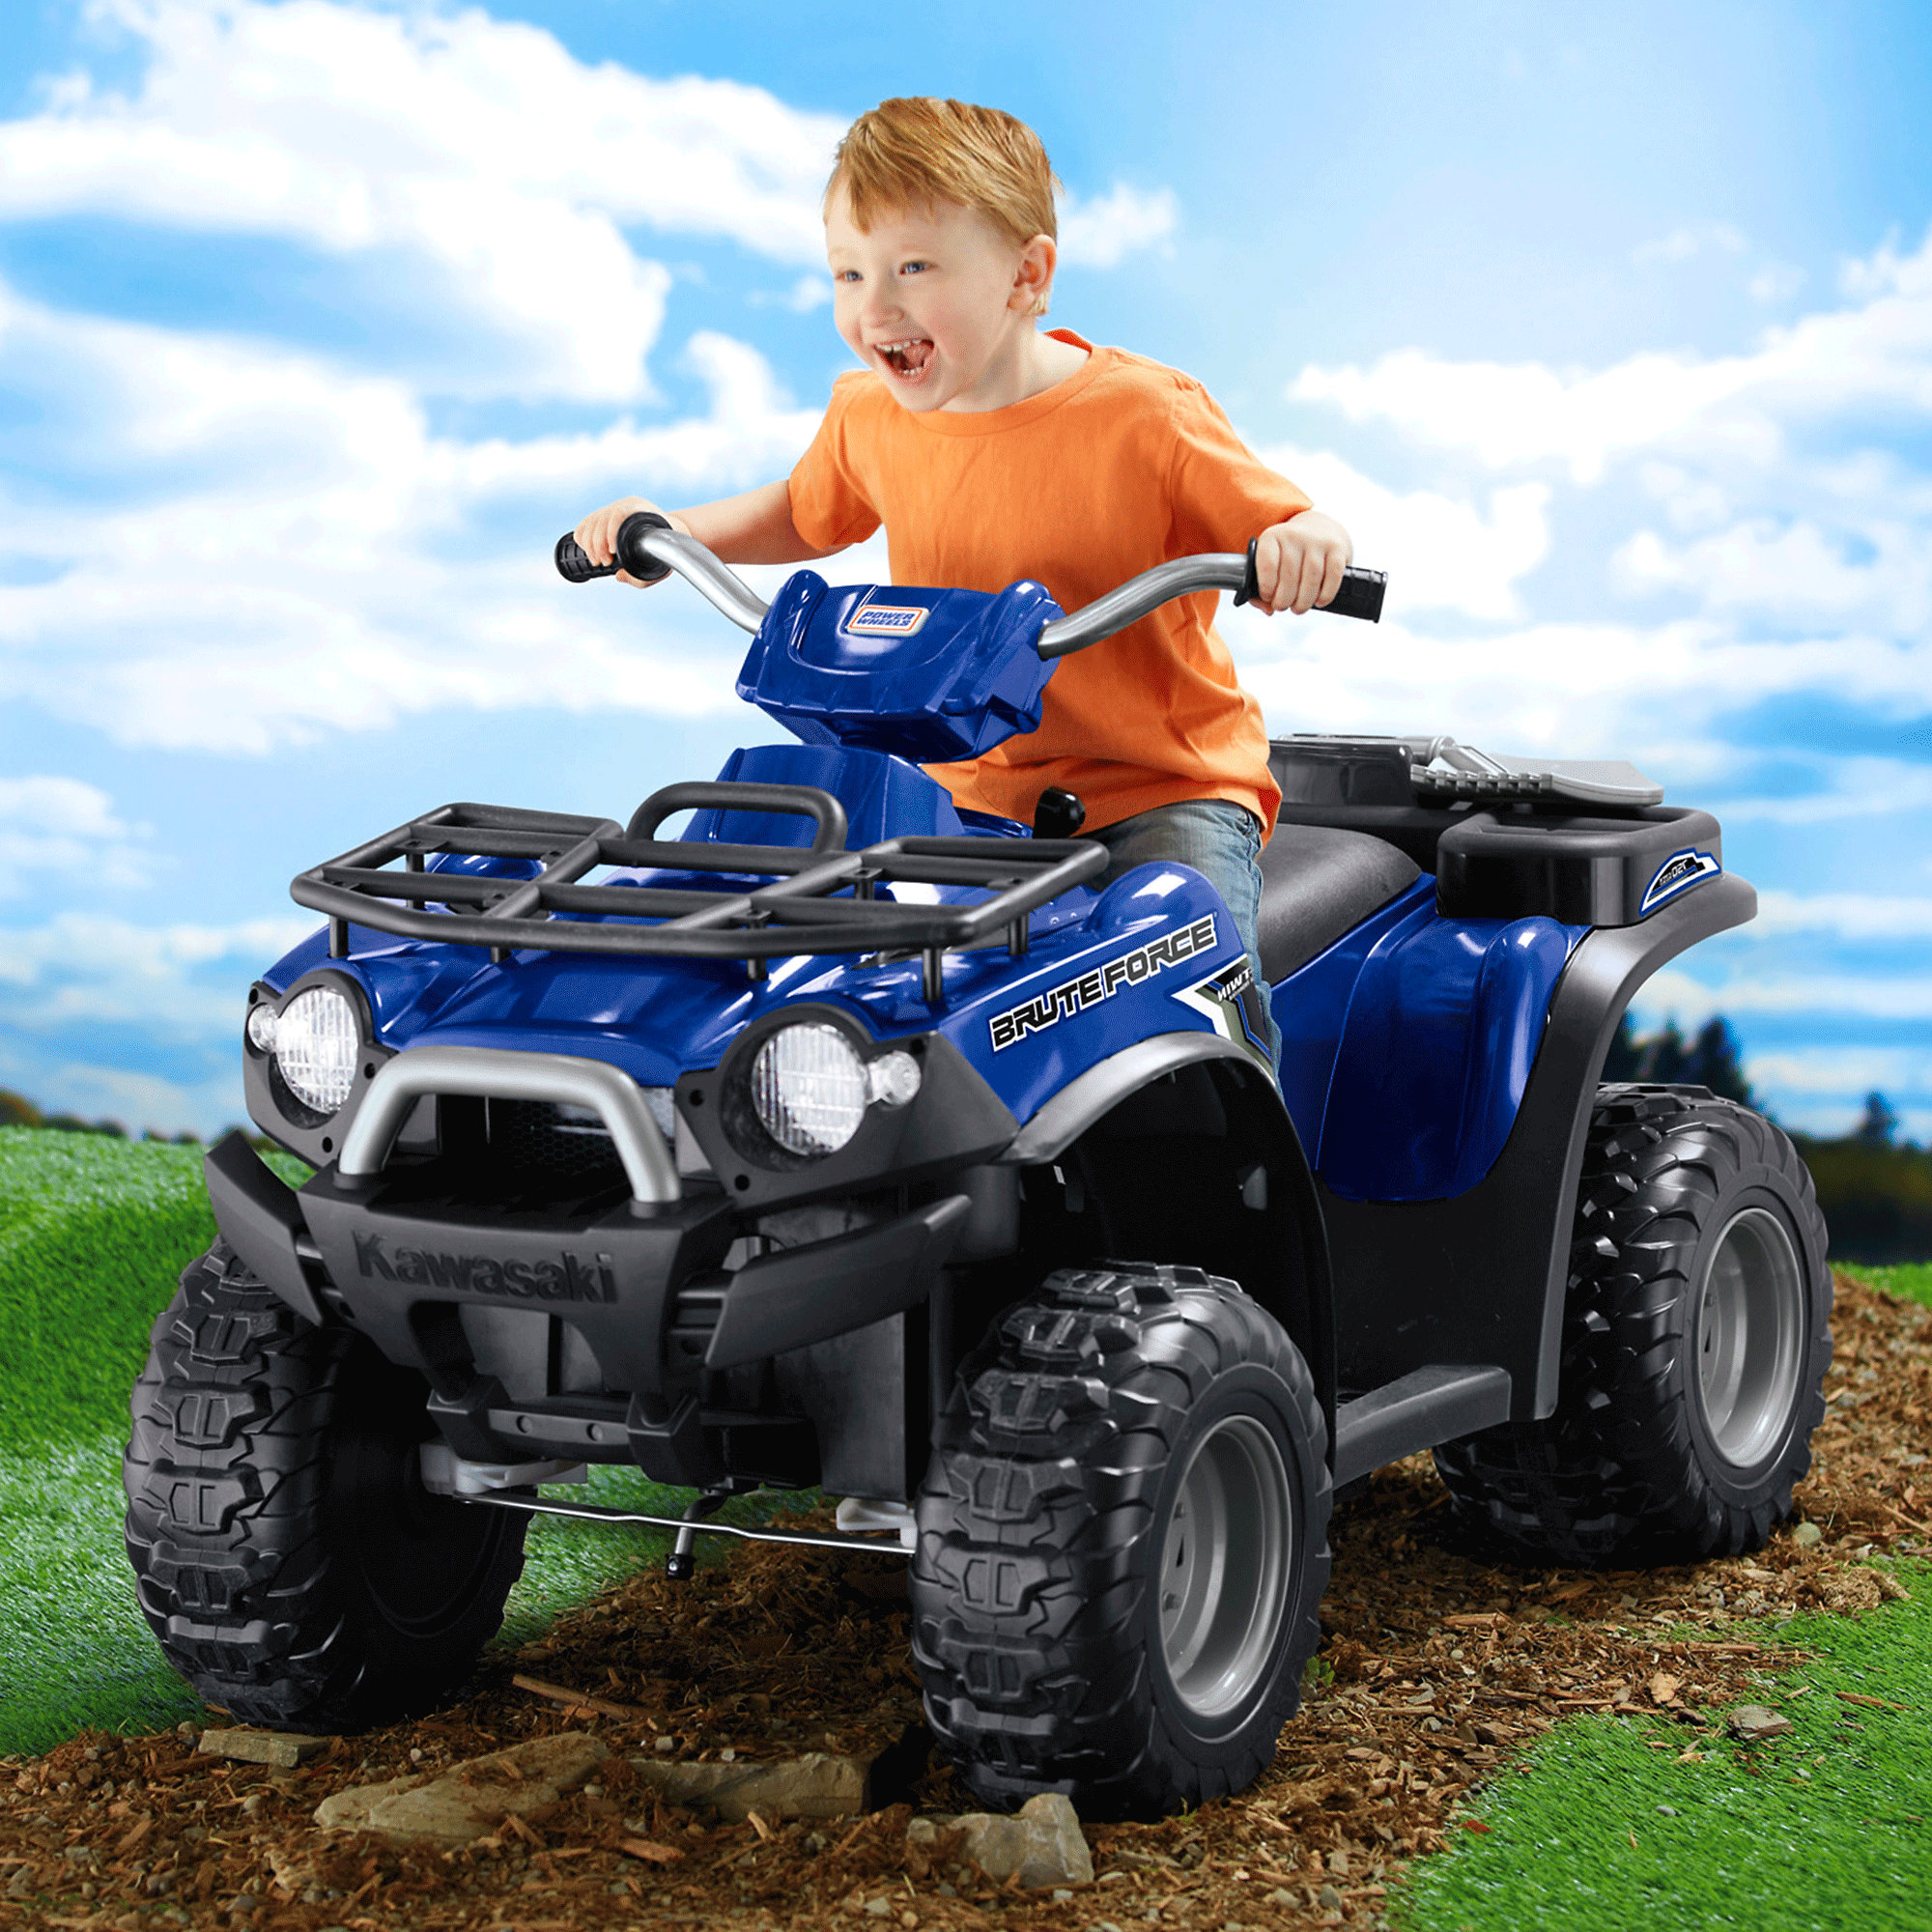 Fisher Price Power Wheels Kawasaki Brute Force ATV Battery Powered Riding Toy by Mattel